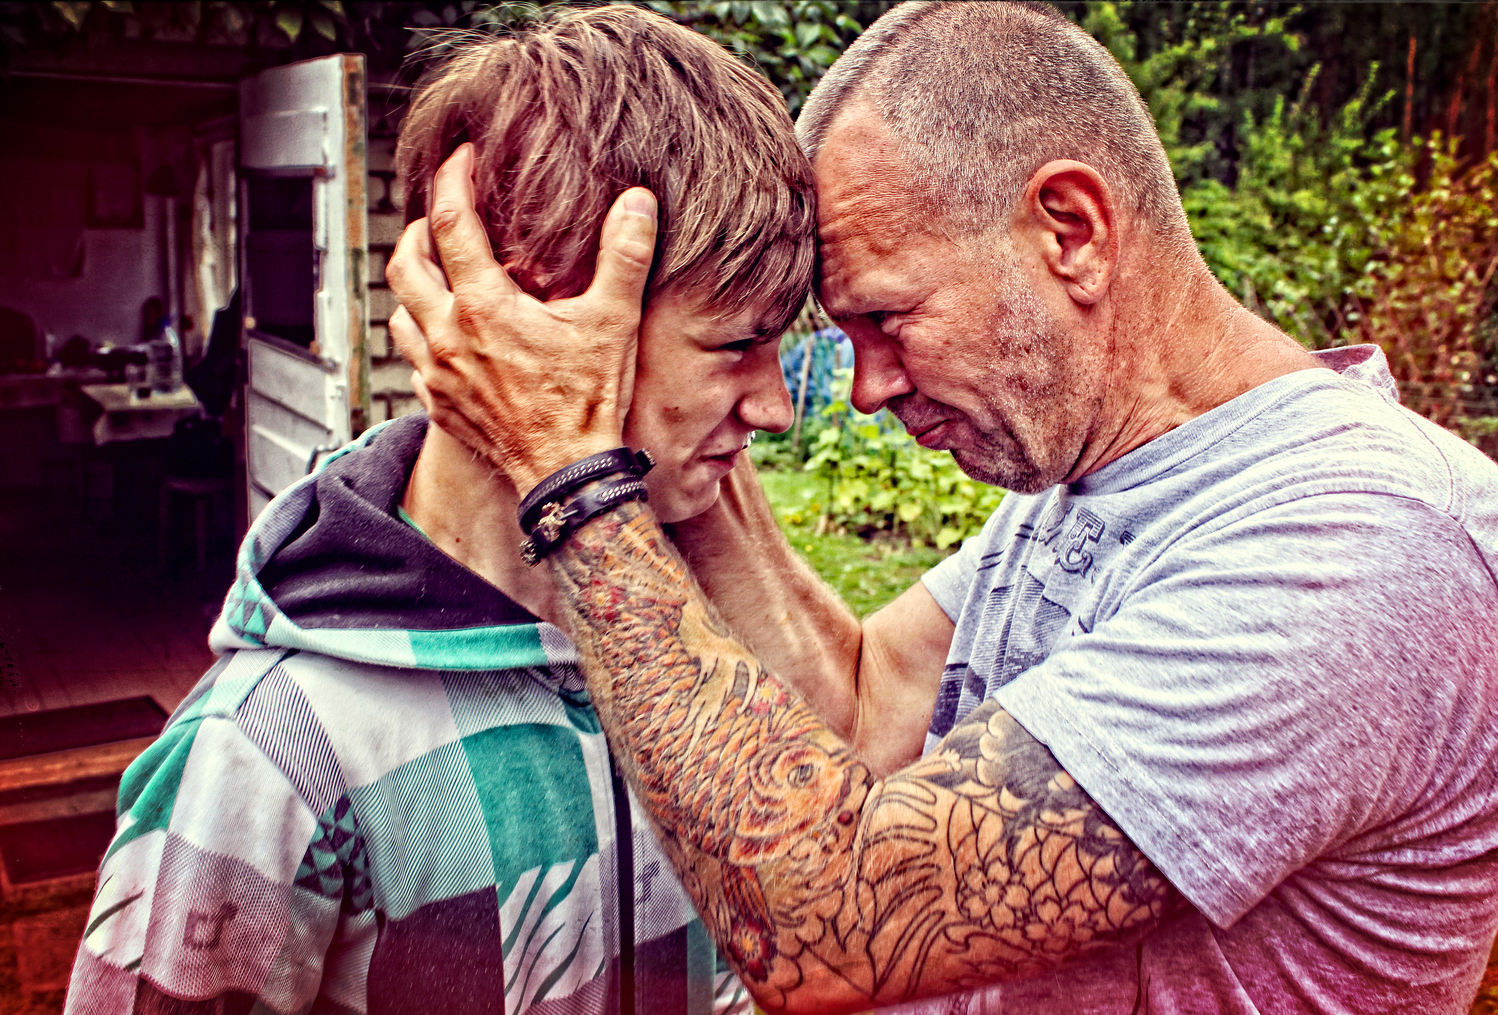 Fathers: The Time To Empower Your Family is Now